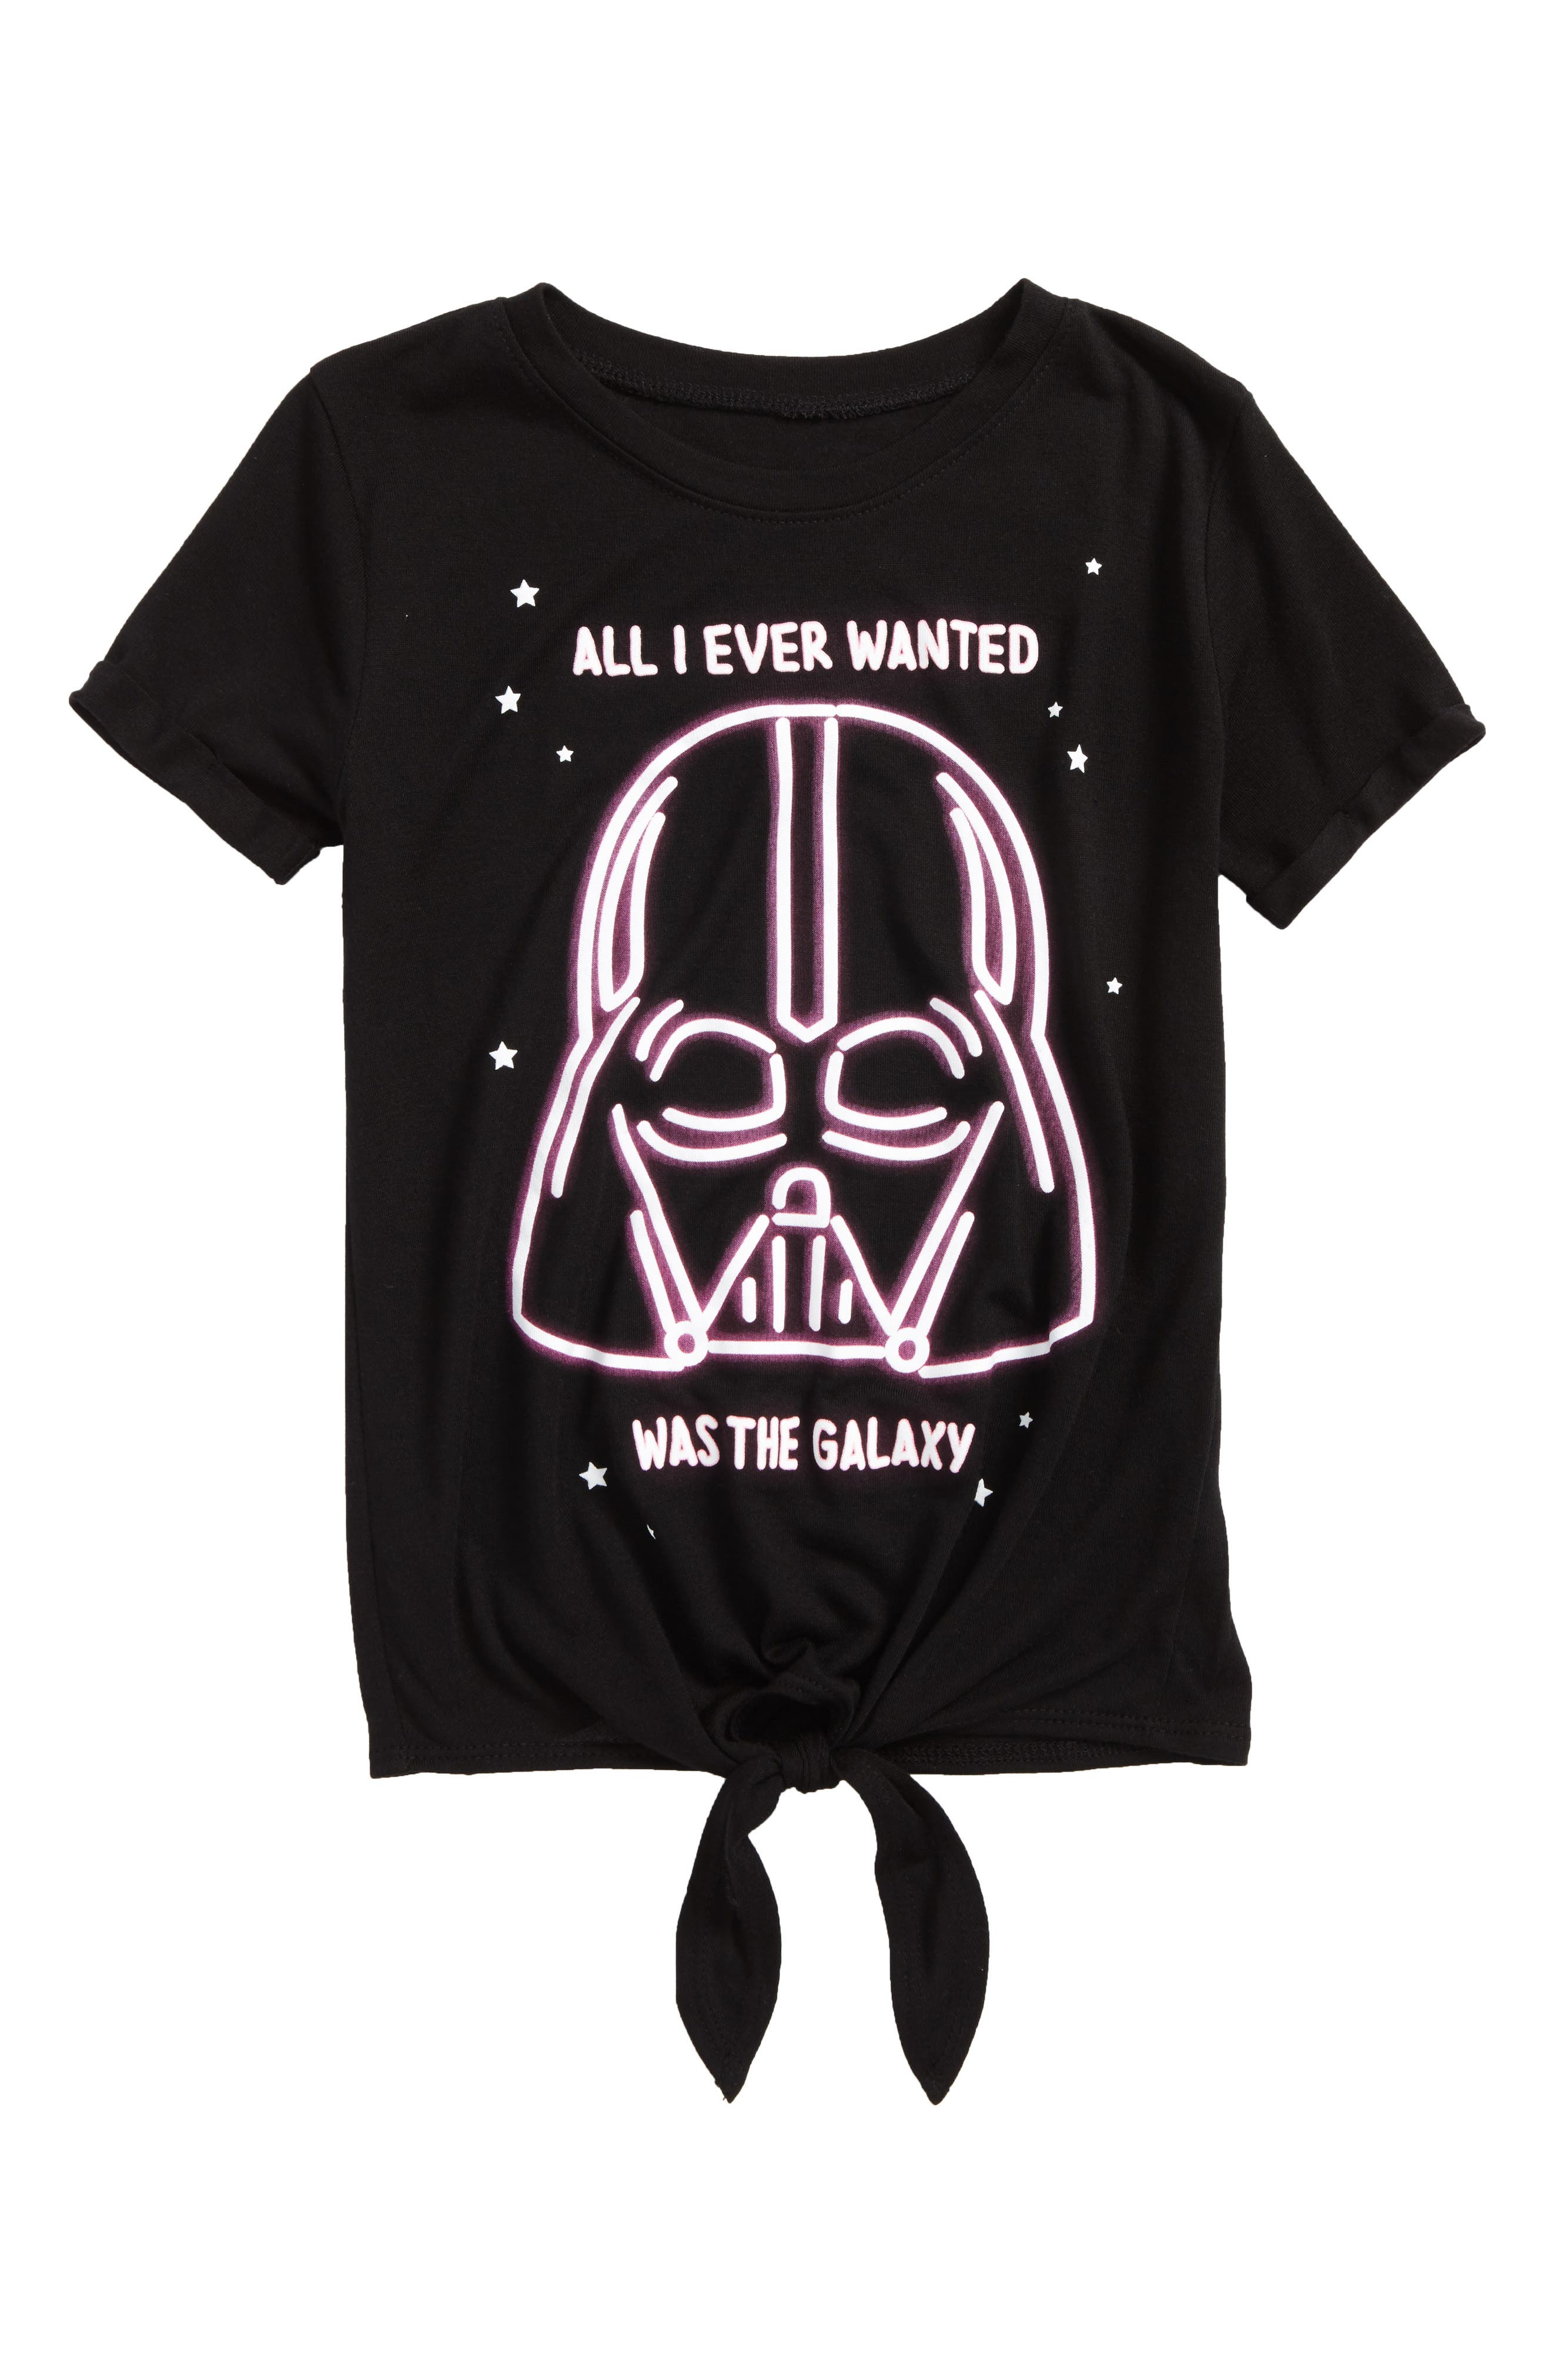 Main Image - Mighty Fine Star Wars™ All I Ever Wanted Graphic Tee (Toddler Girls, Little Girls & Big Girls)